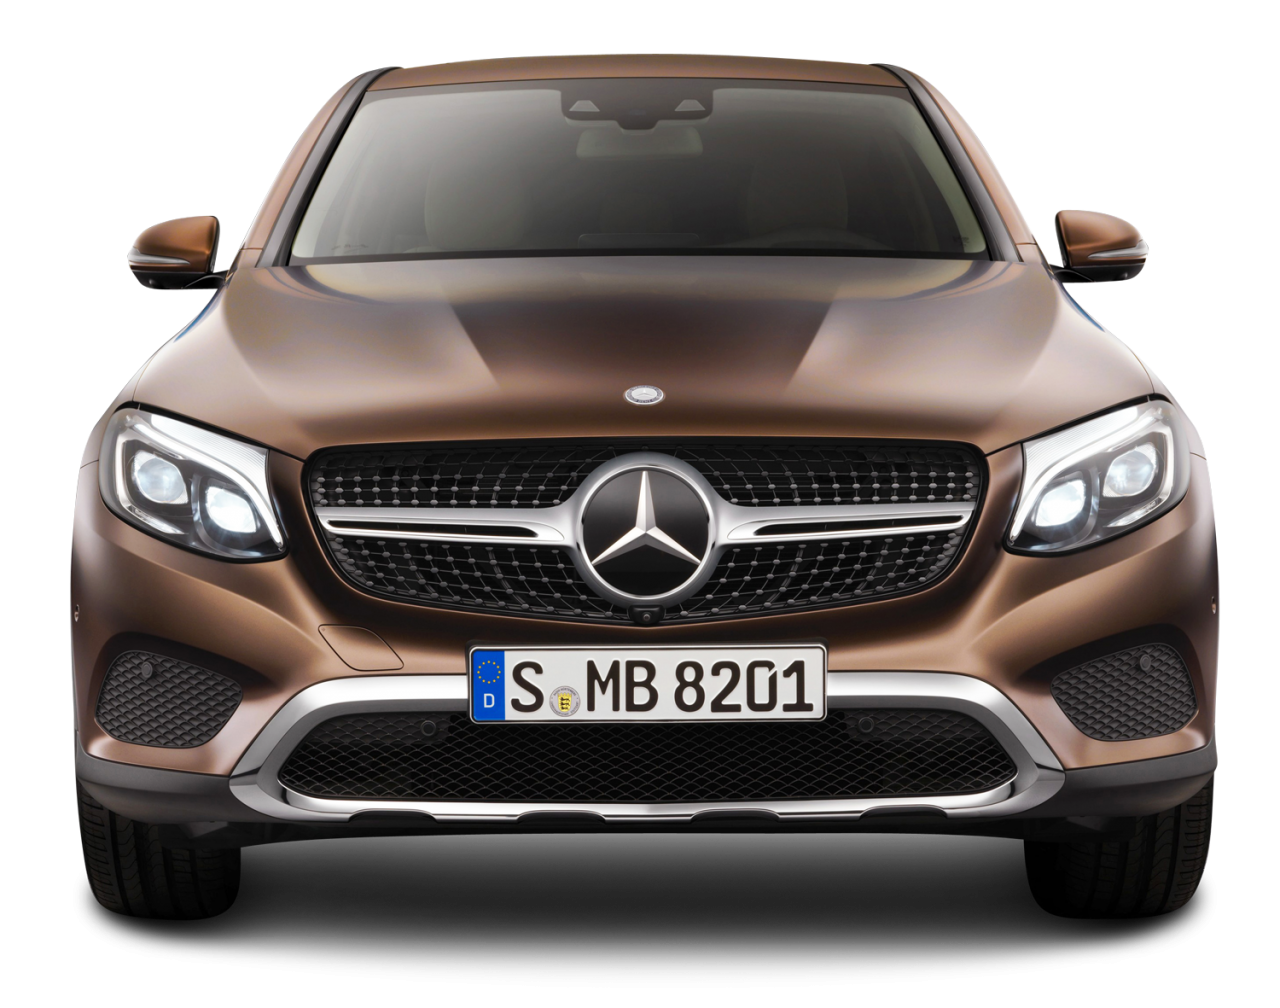 Brown Mercedes Benz Gle Coupe Front View Car Png Image Purepng Free Transparent Cc0 Png Image Library